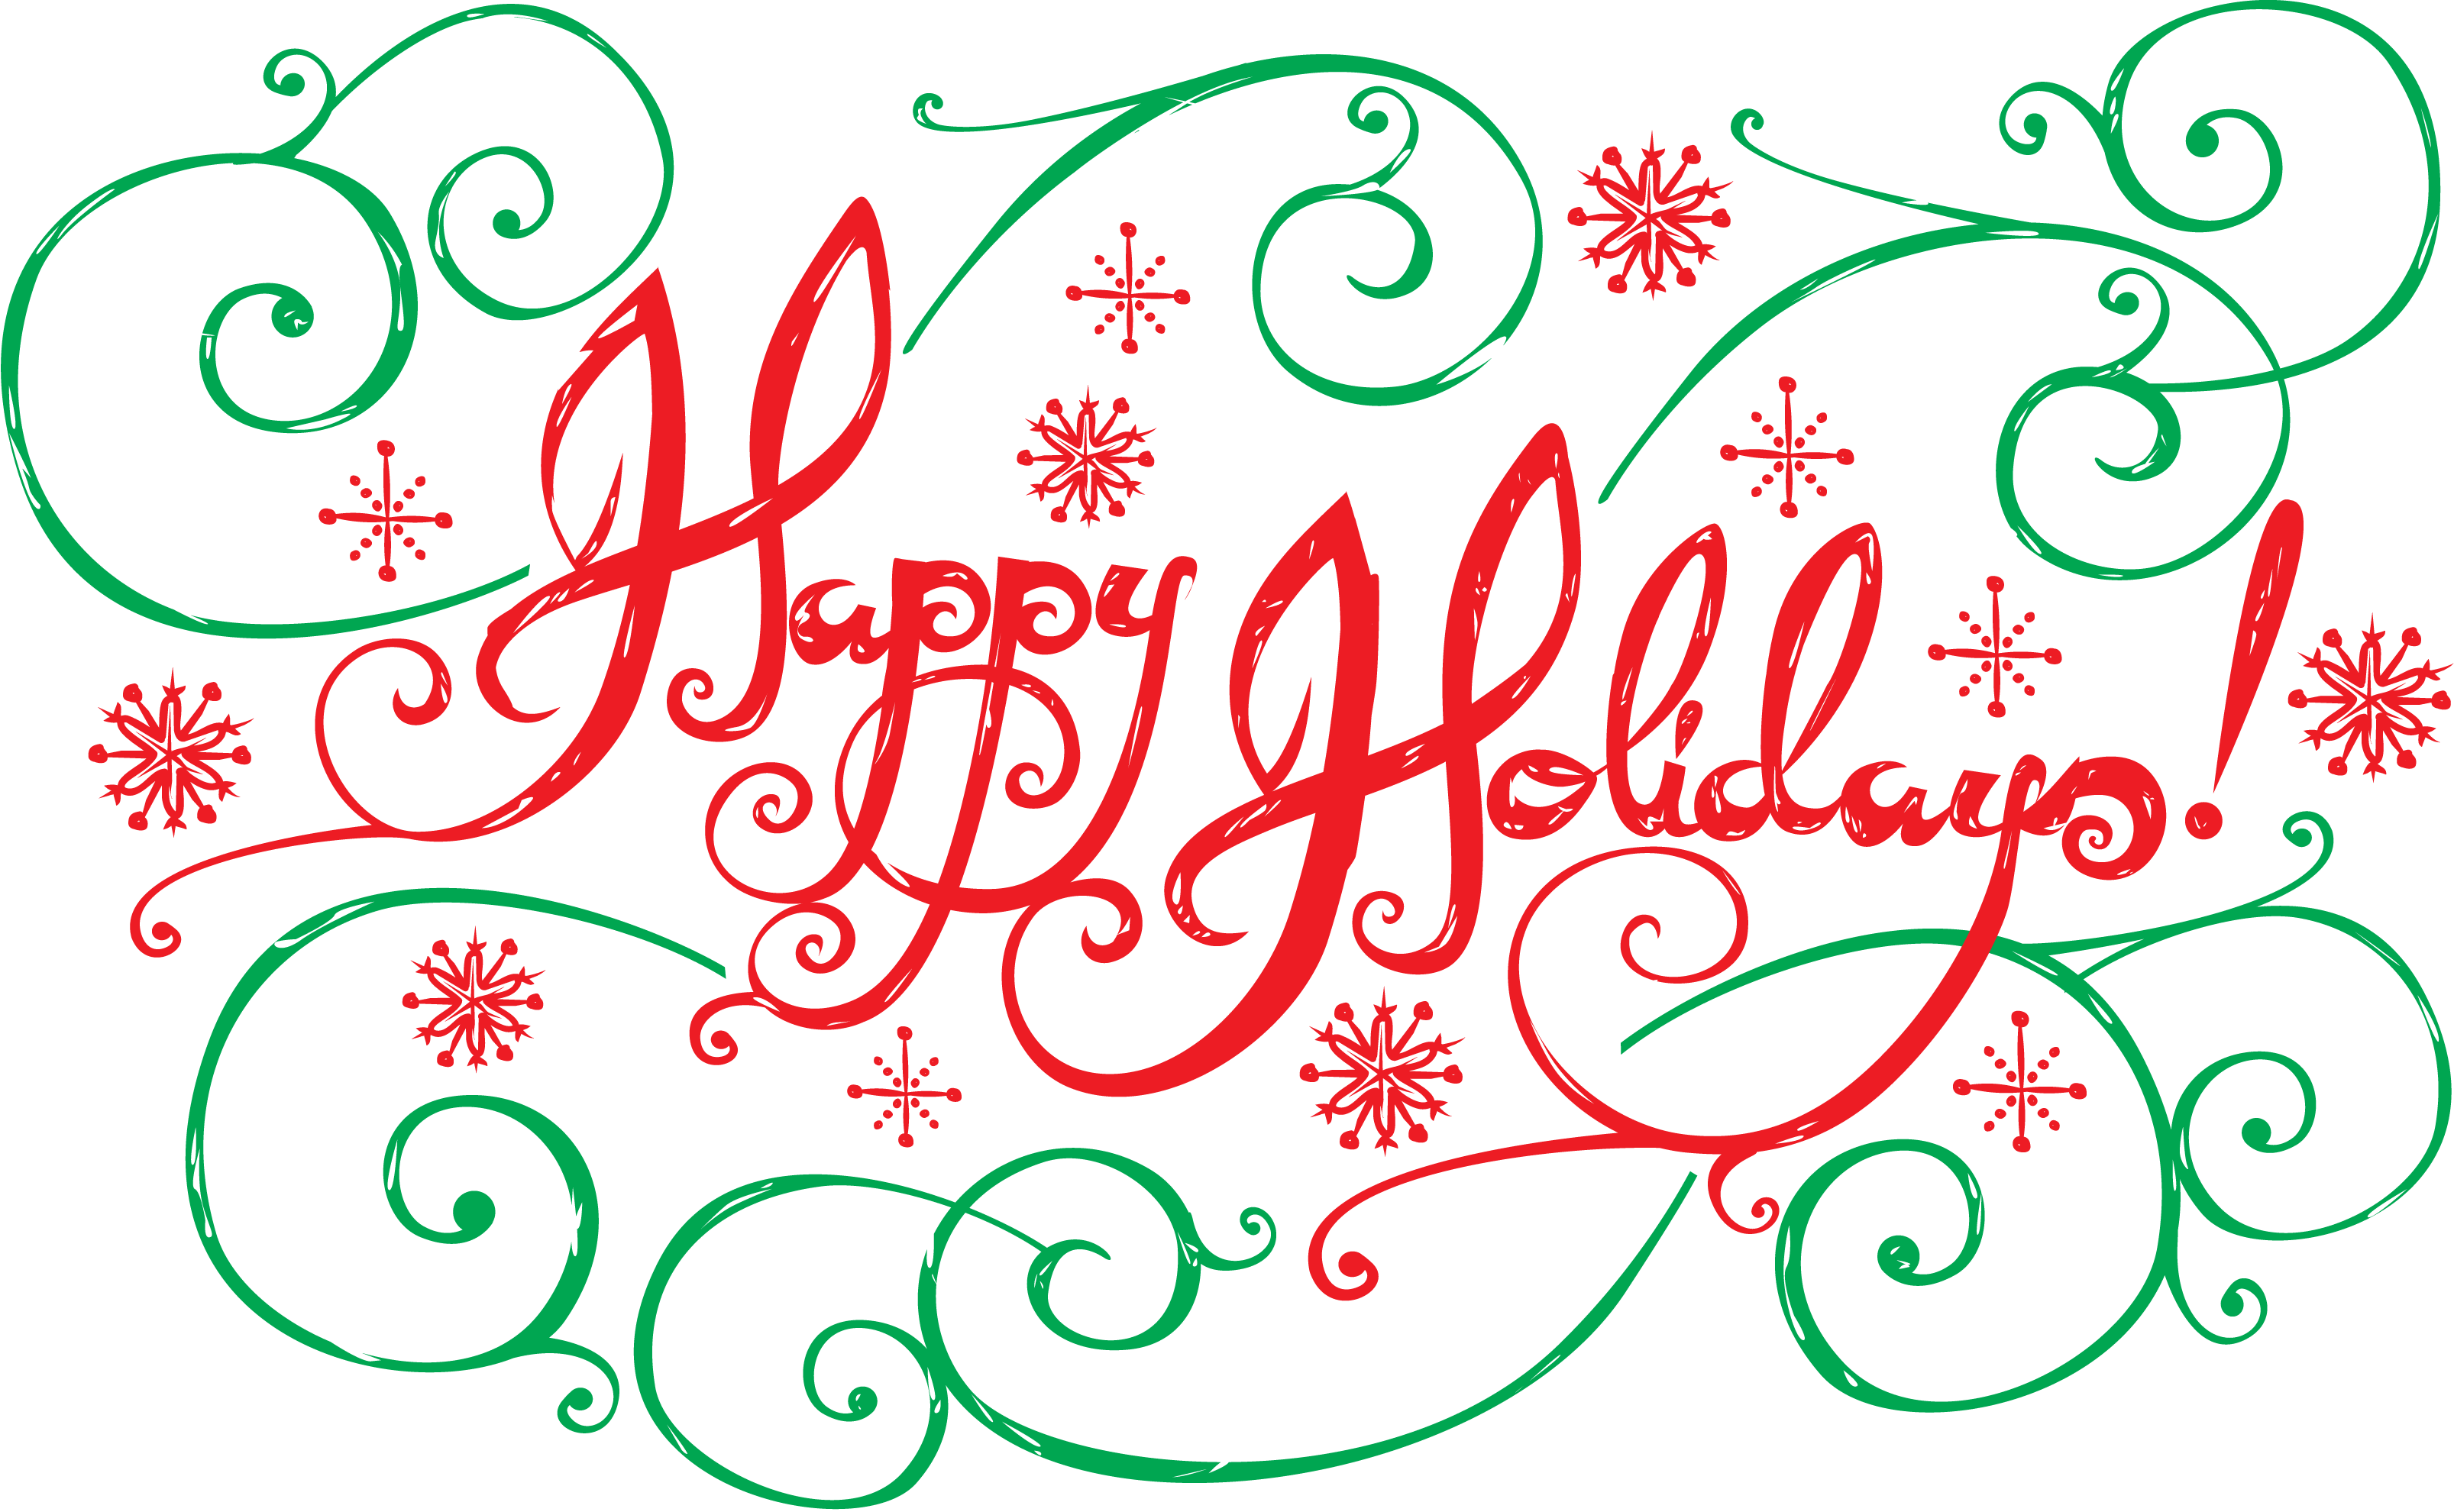 Happy holiday and happy new year clipart clip art library download Holidays clipart happy new year, Holidays happy new year Transparent ... clip art library download